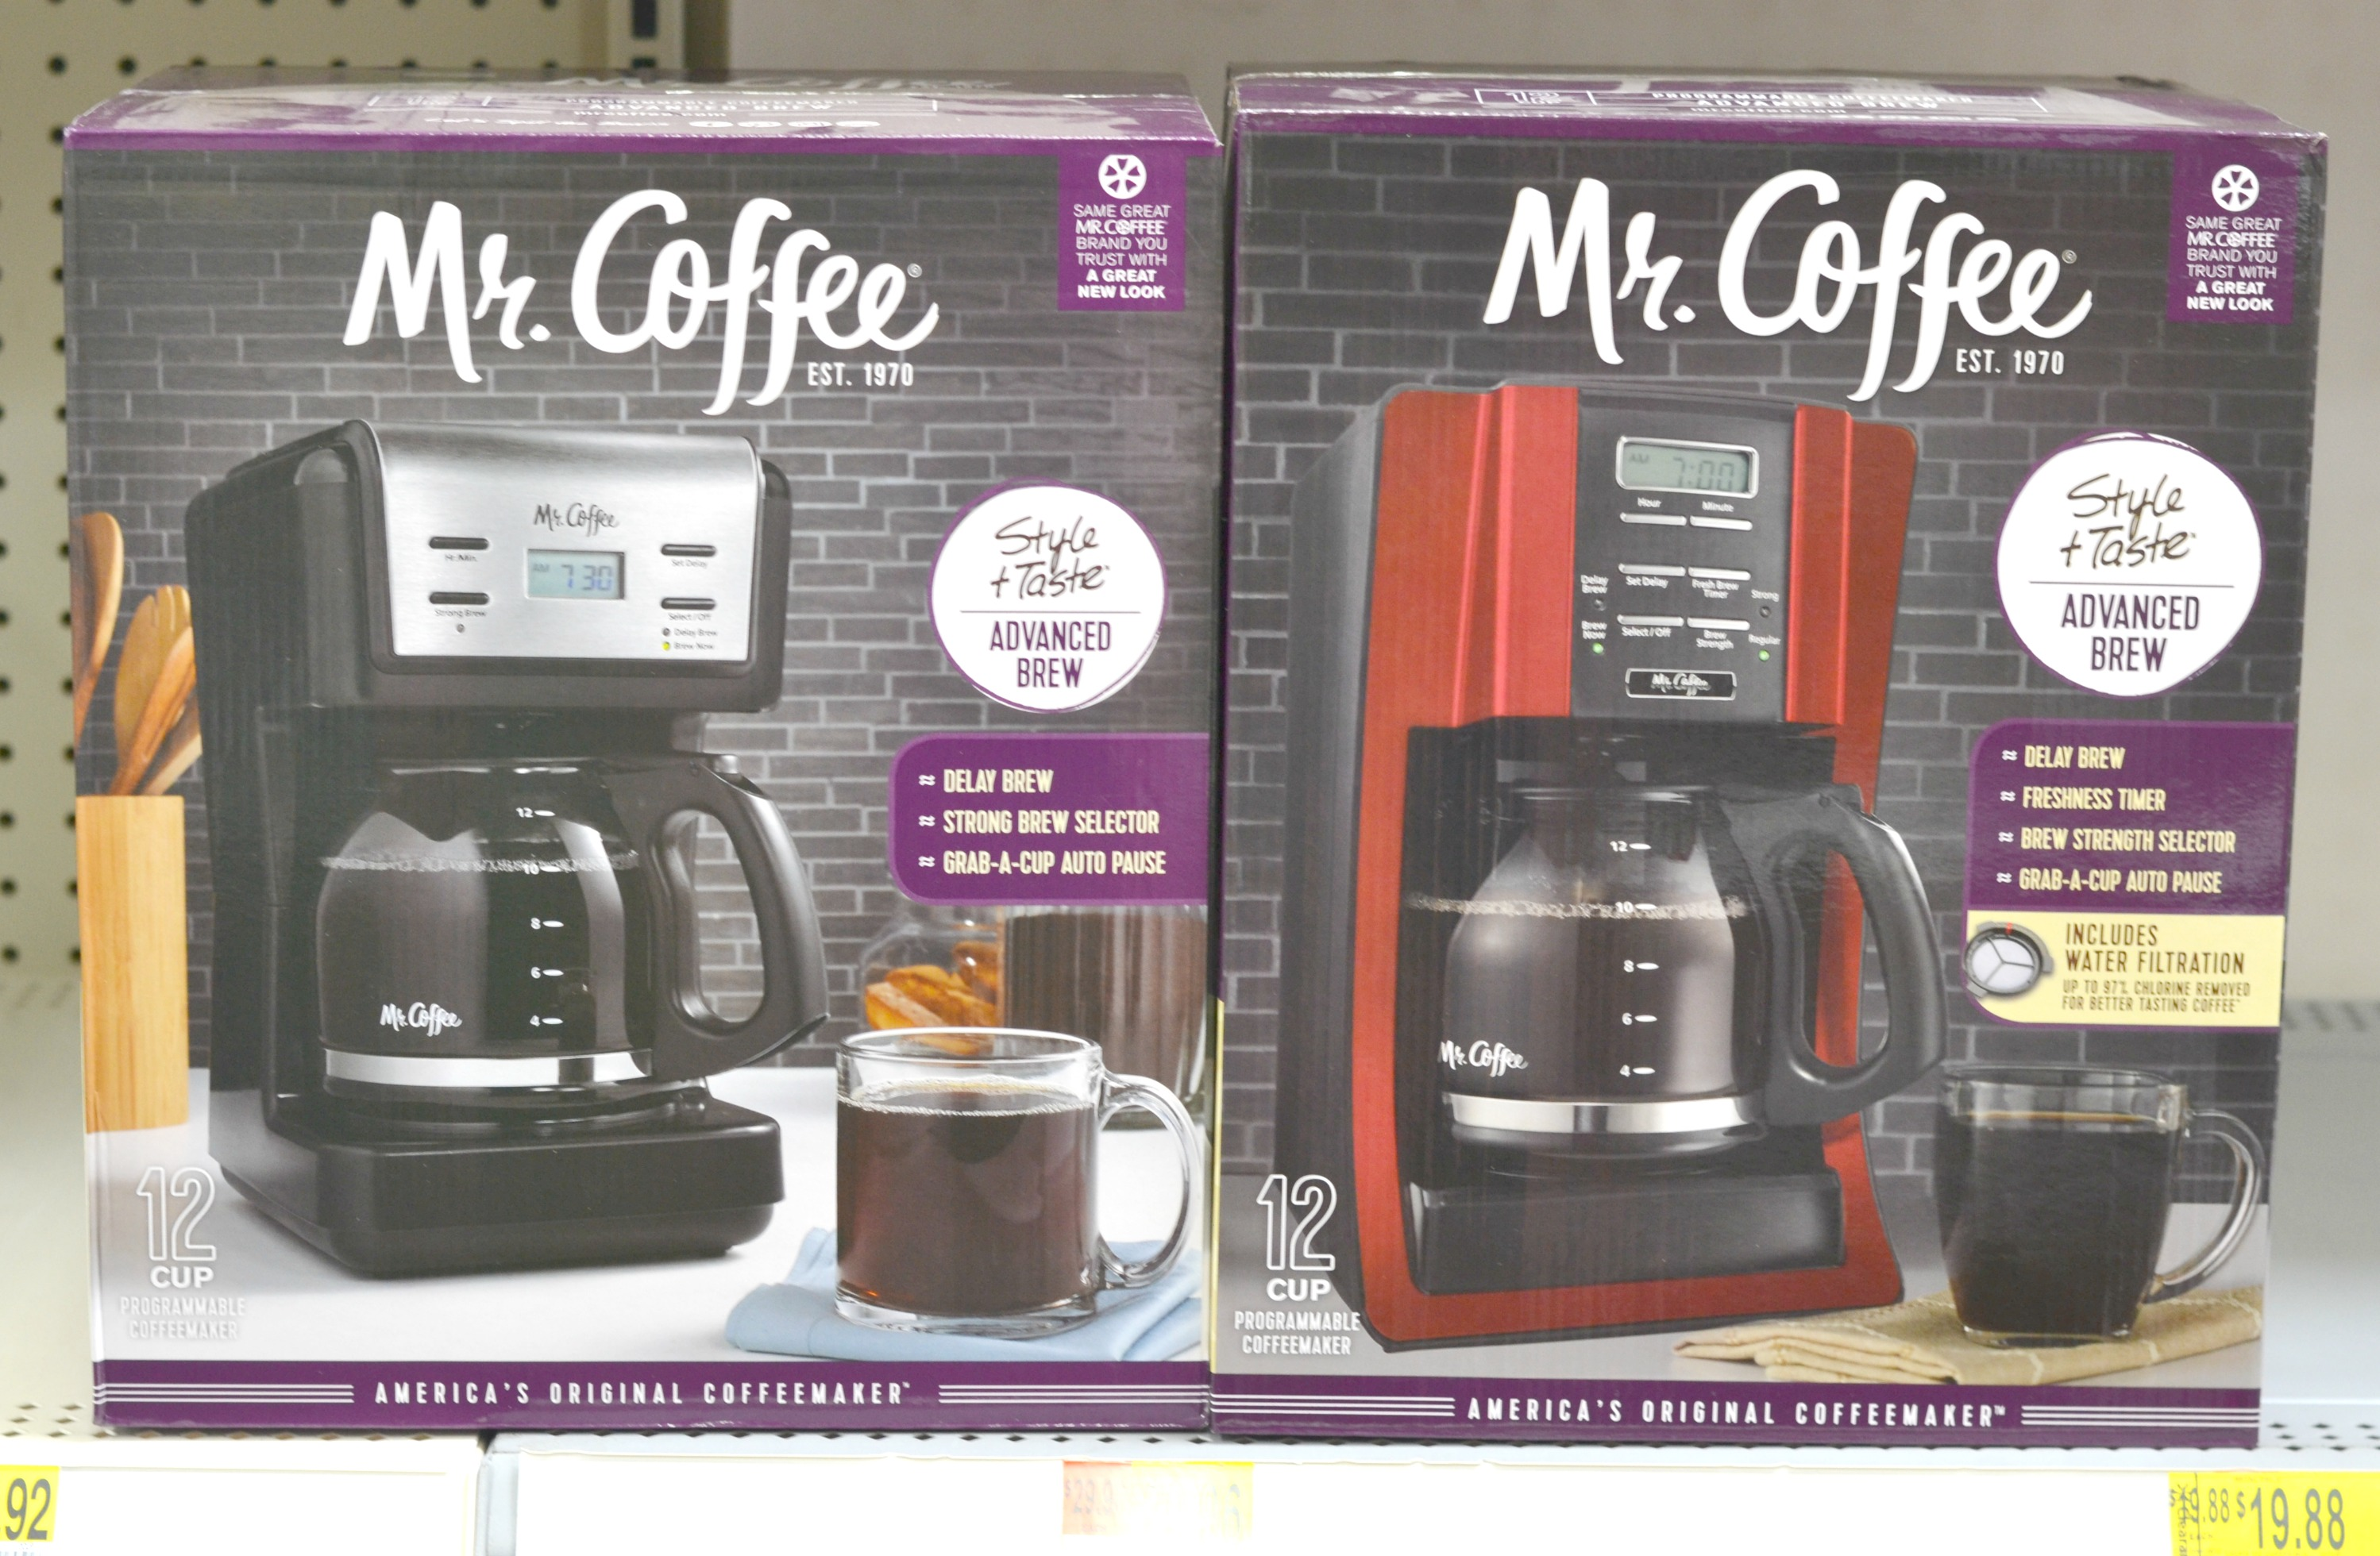 Mr. Coffee and Walmart